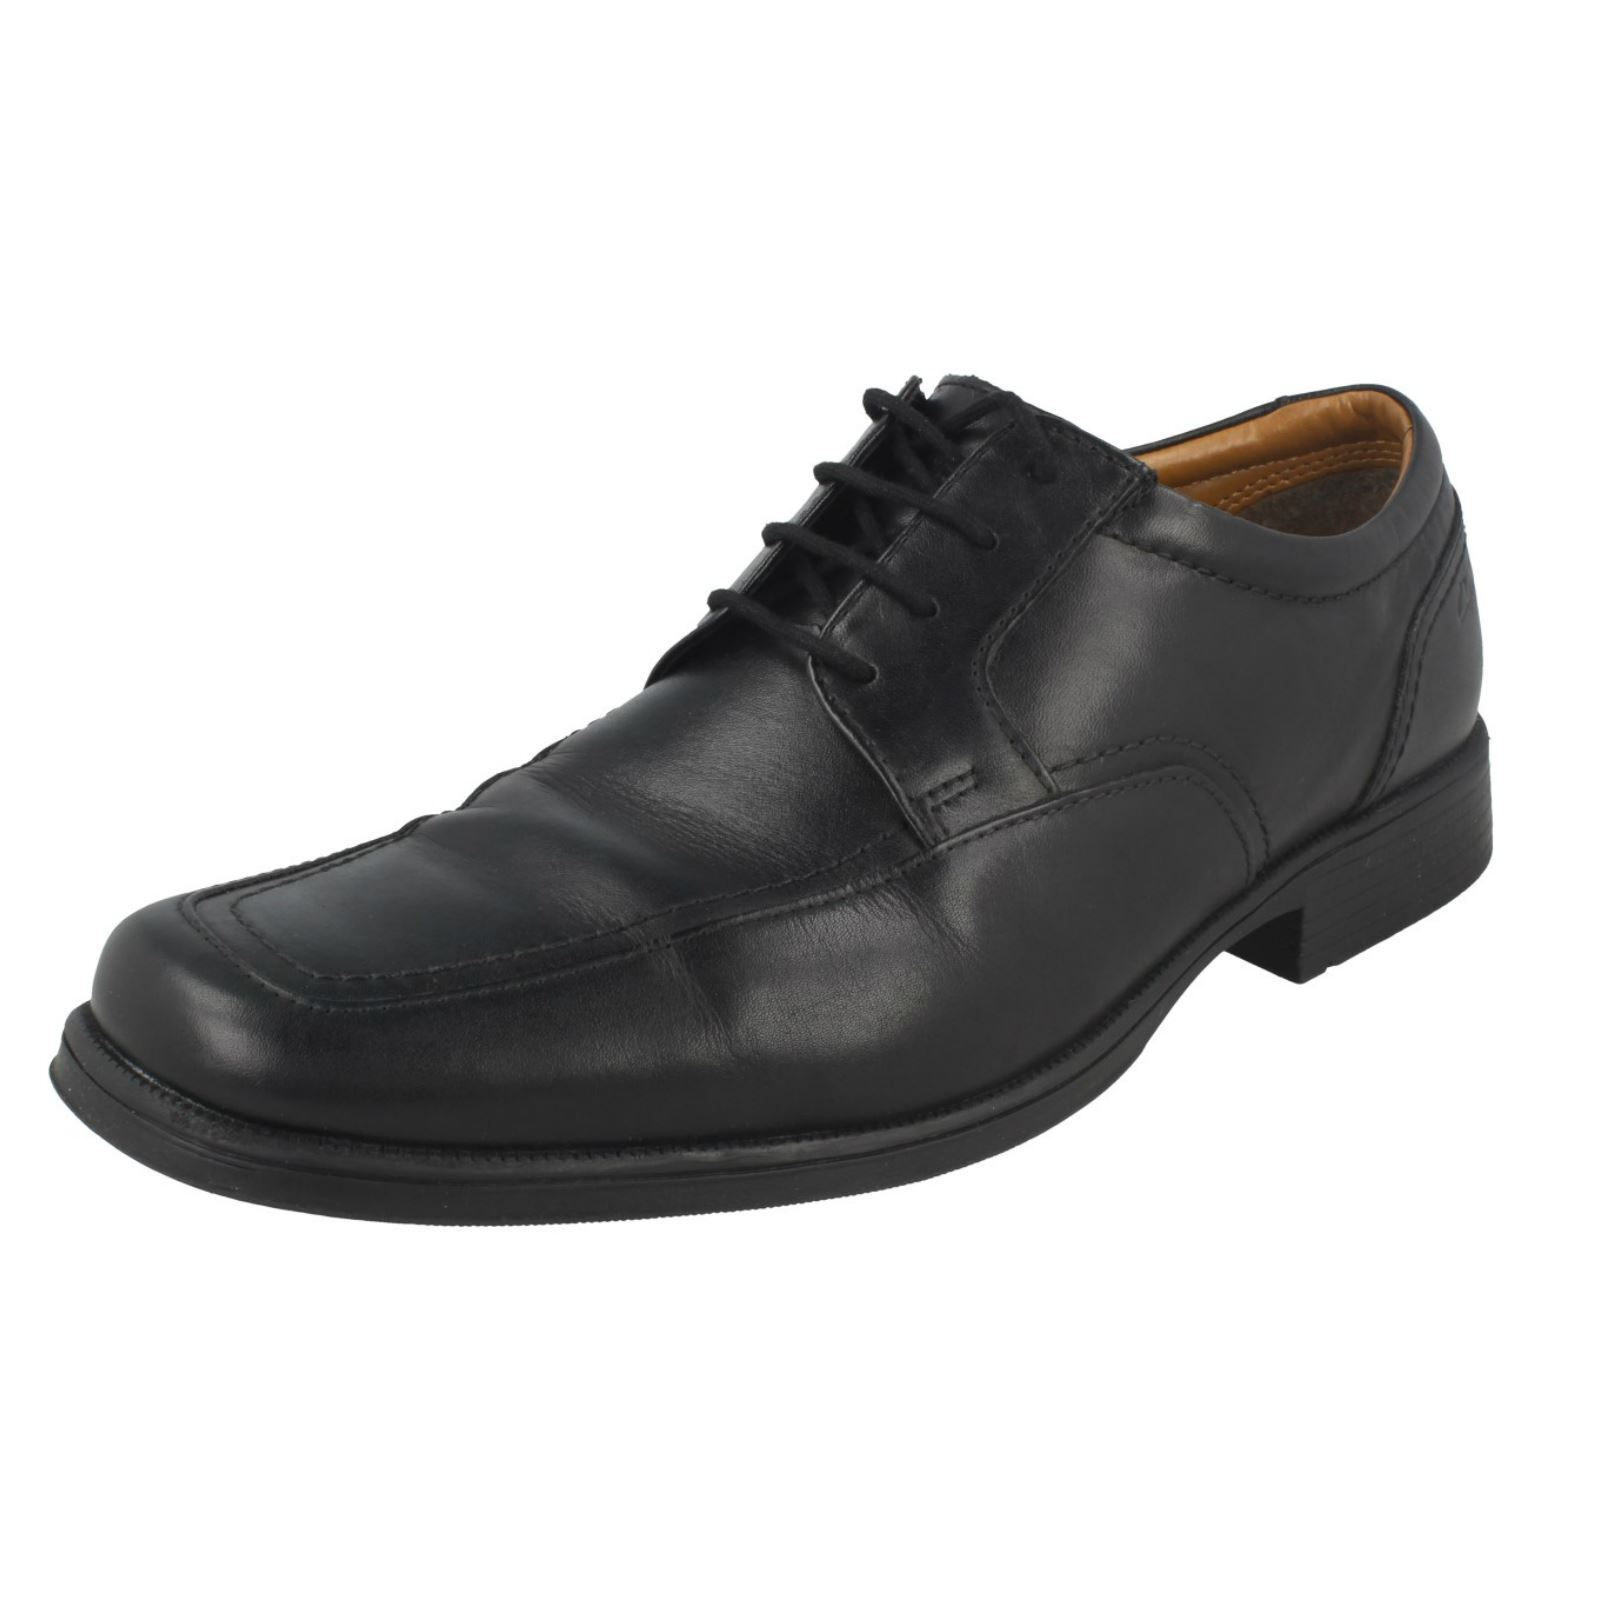 Uomo Clarks Cushioning Formal SquaROT Toe Lace Up Leder Schuhes Huckley Spring